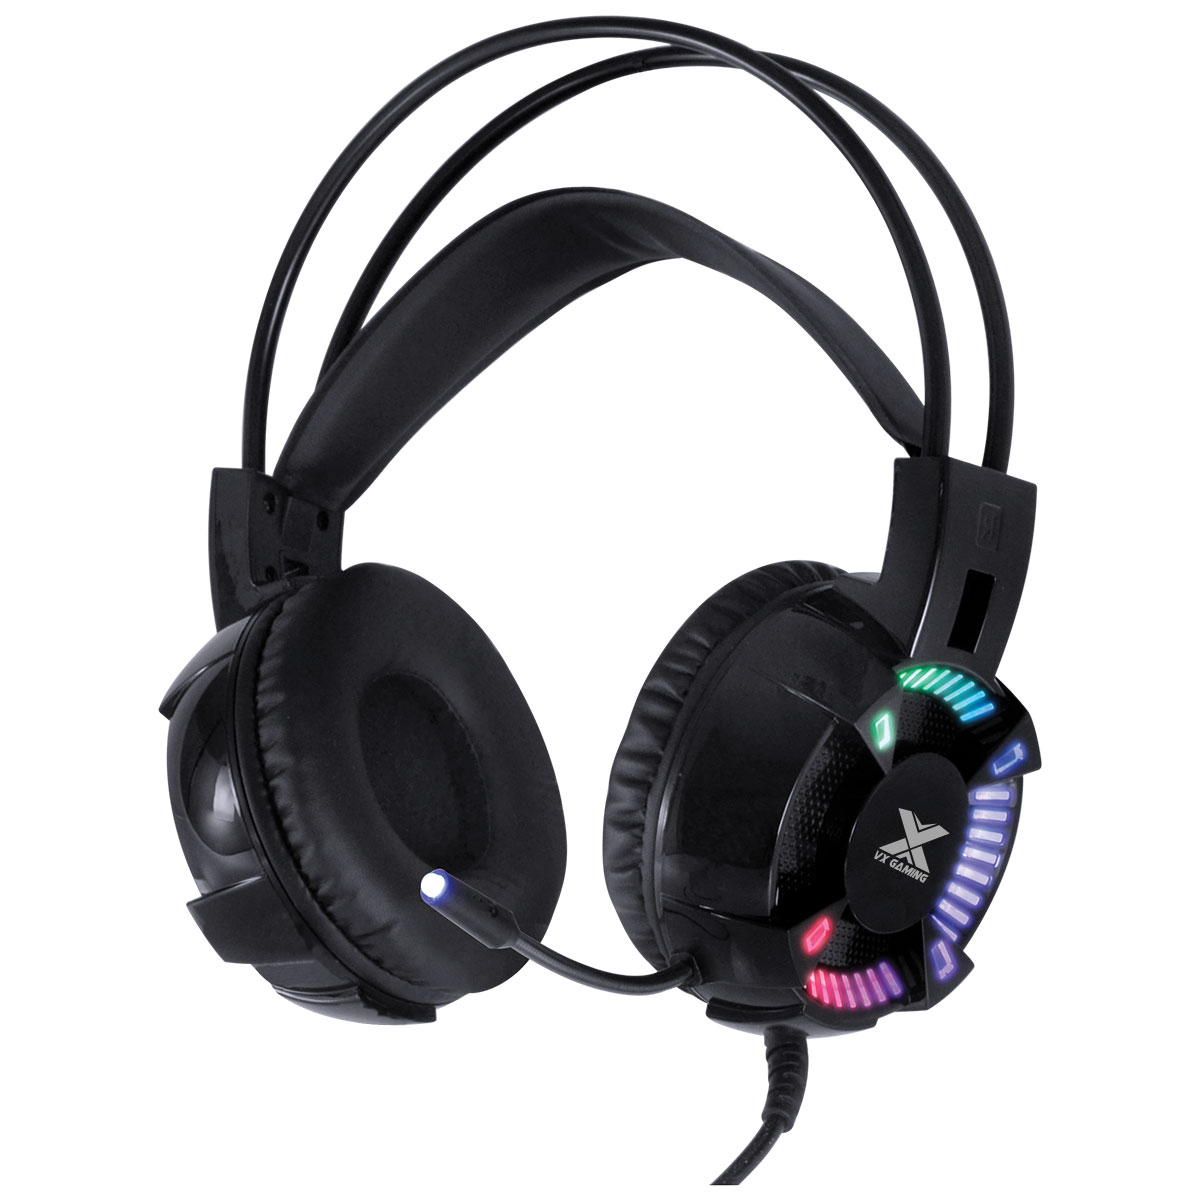 FONE HEADSET GAMER VX GAMING ENYA AUDIO 7.1 LED RGB ESTÁTICO USB, MICROFONE FLEXÍVEL COM SOFTWARE DE ÁUDIO - GH400